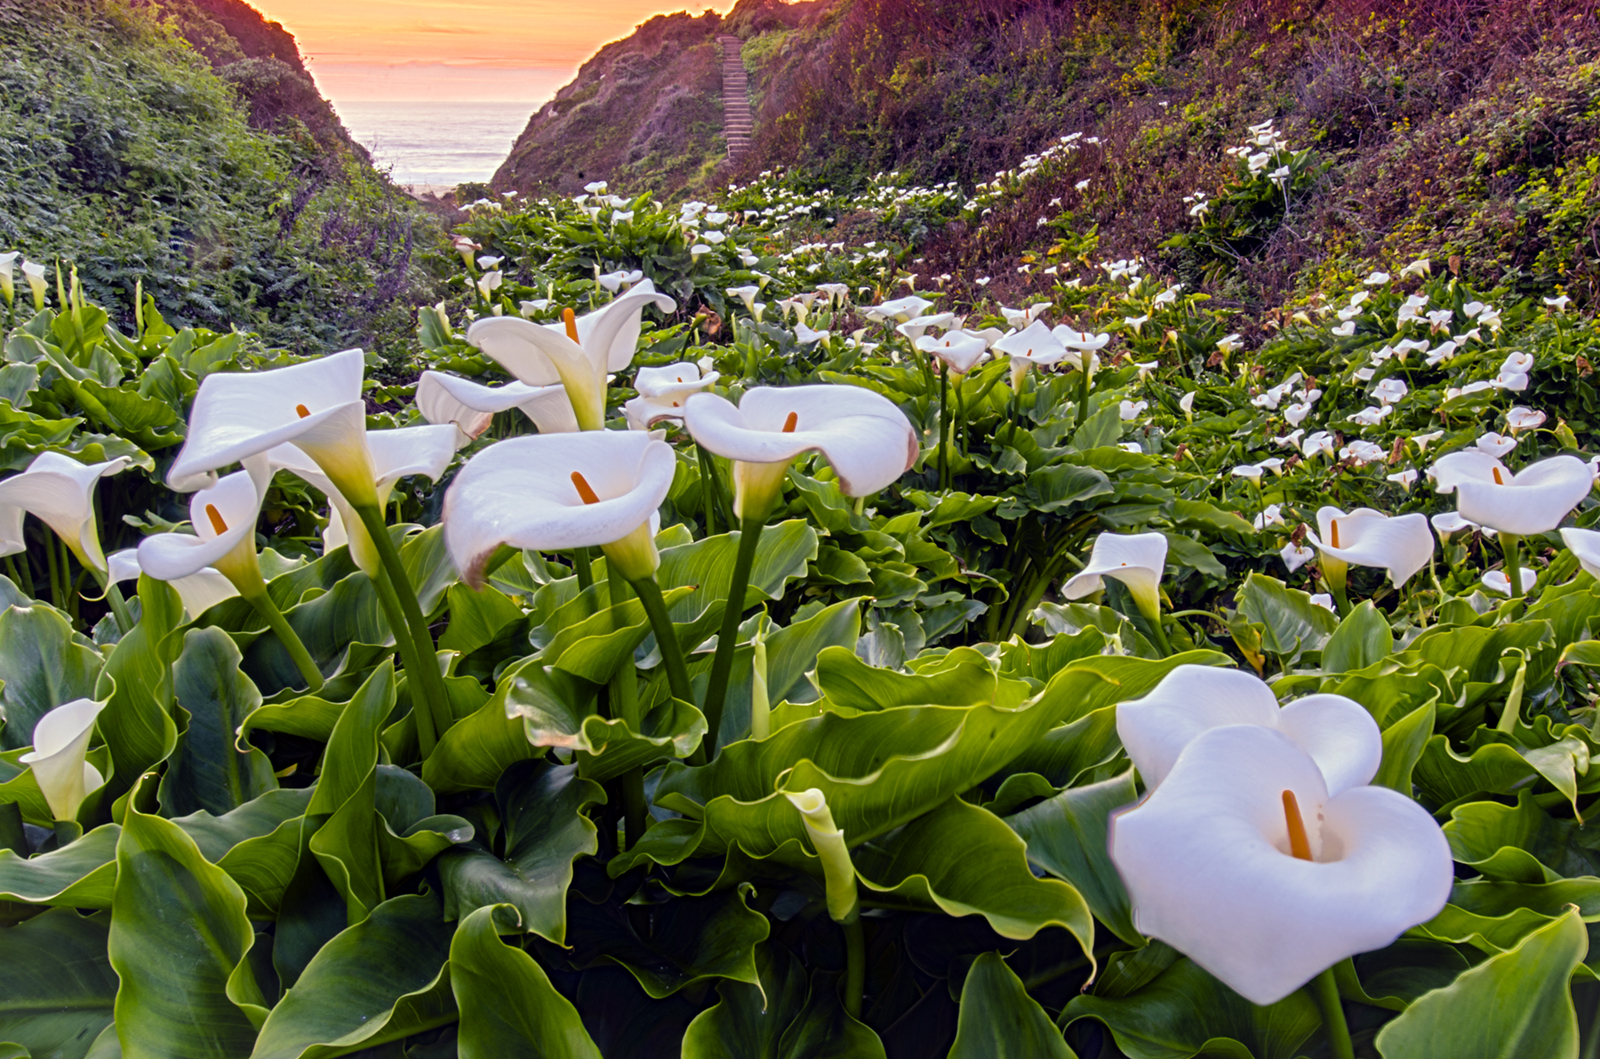 Calla Lillies